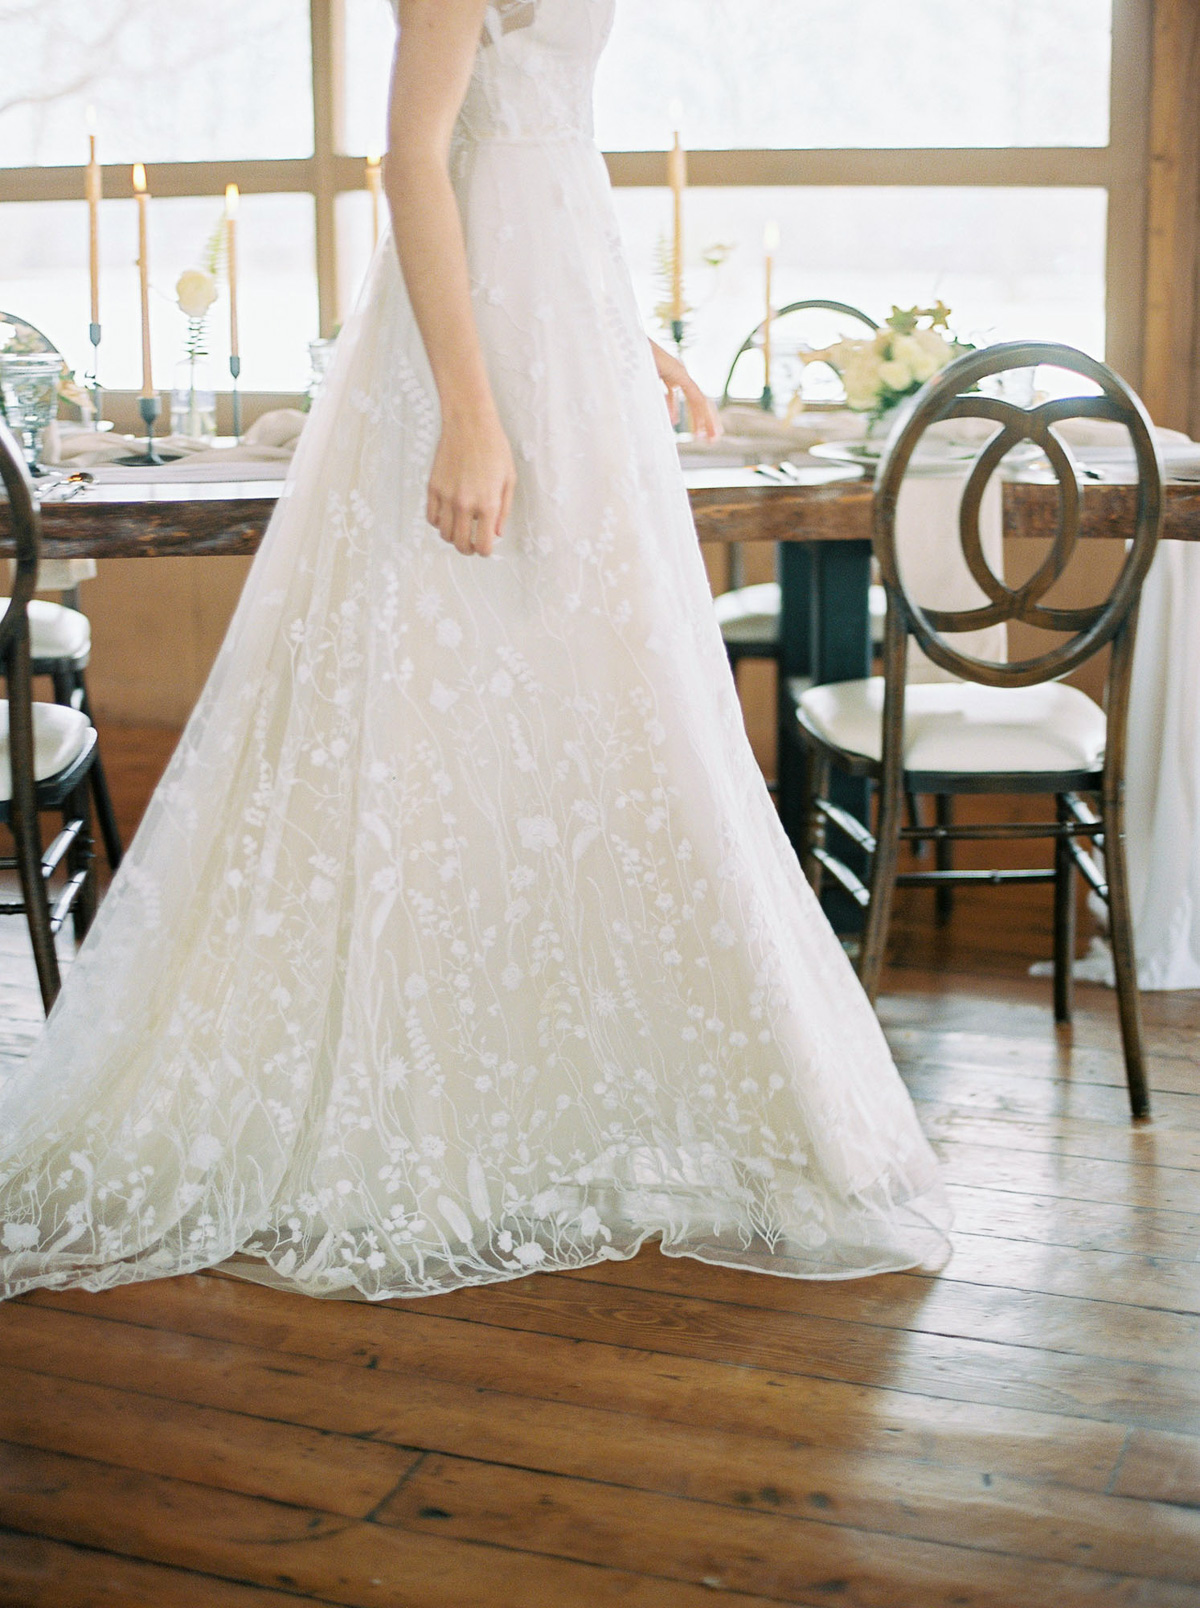 will-reid-photo-vineyard-bride-swish-list-kurtz-orchards-market-niagara-on-the-lake-wedding-editorial-27.jpg